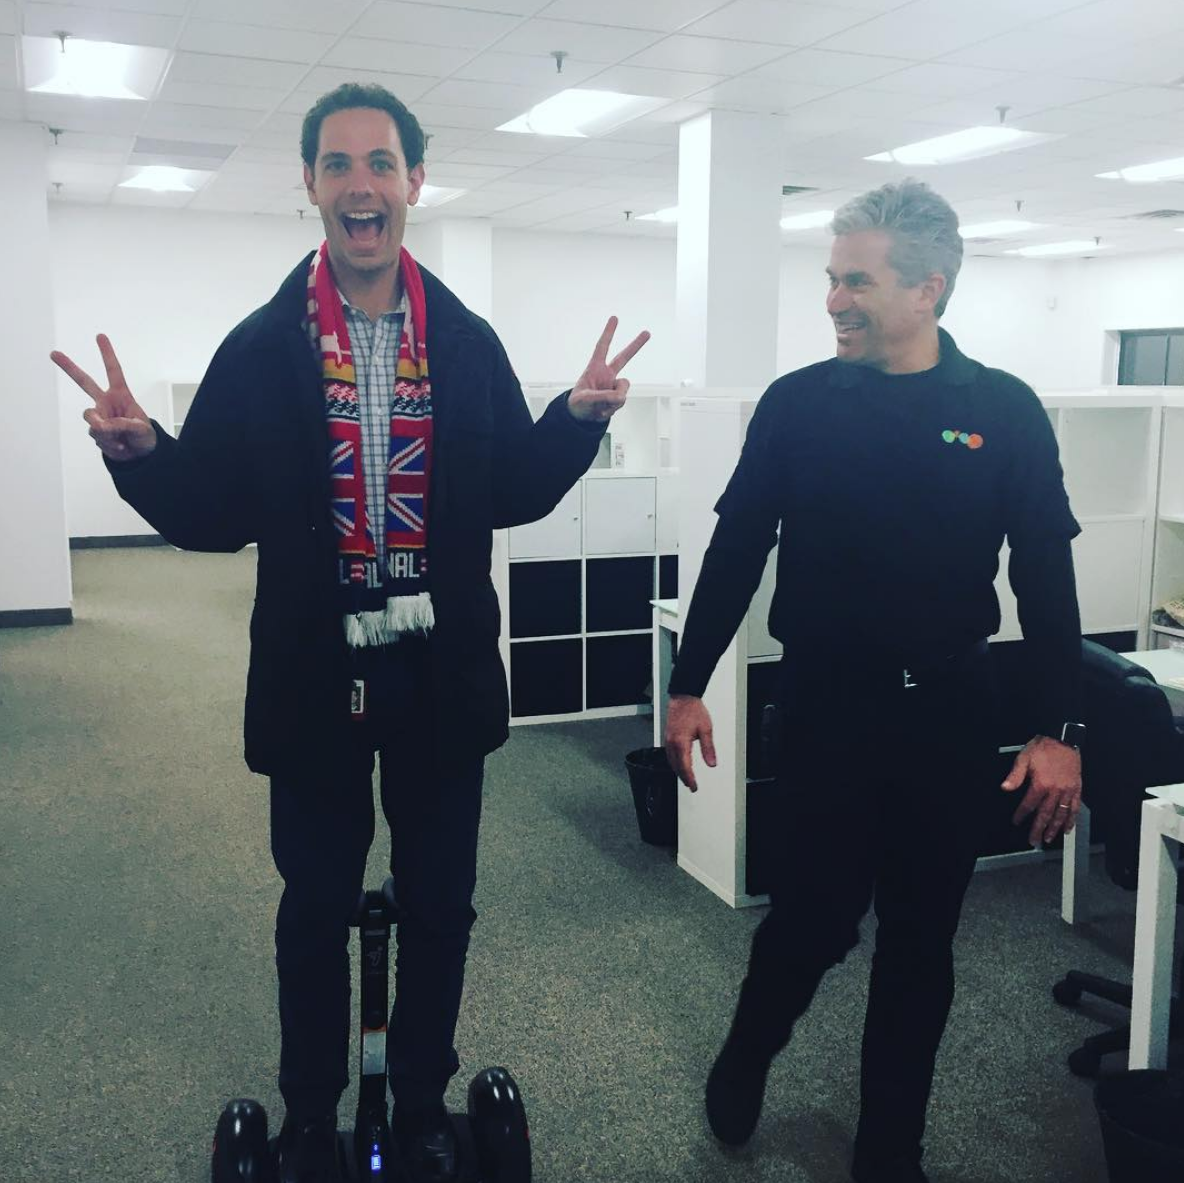 Dr. Michael Goldberg (left) and Joseph Kahn (right) testing out a Segway at the LINX Camps office after a Board meeting in 2016